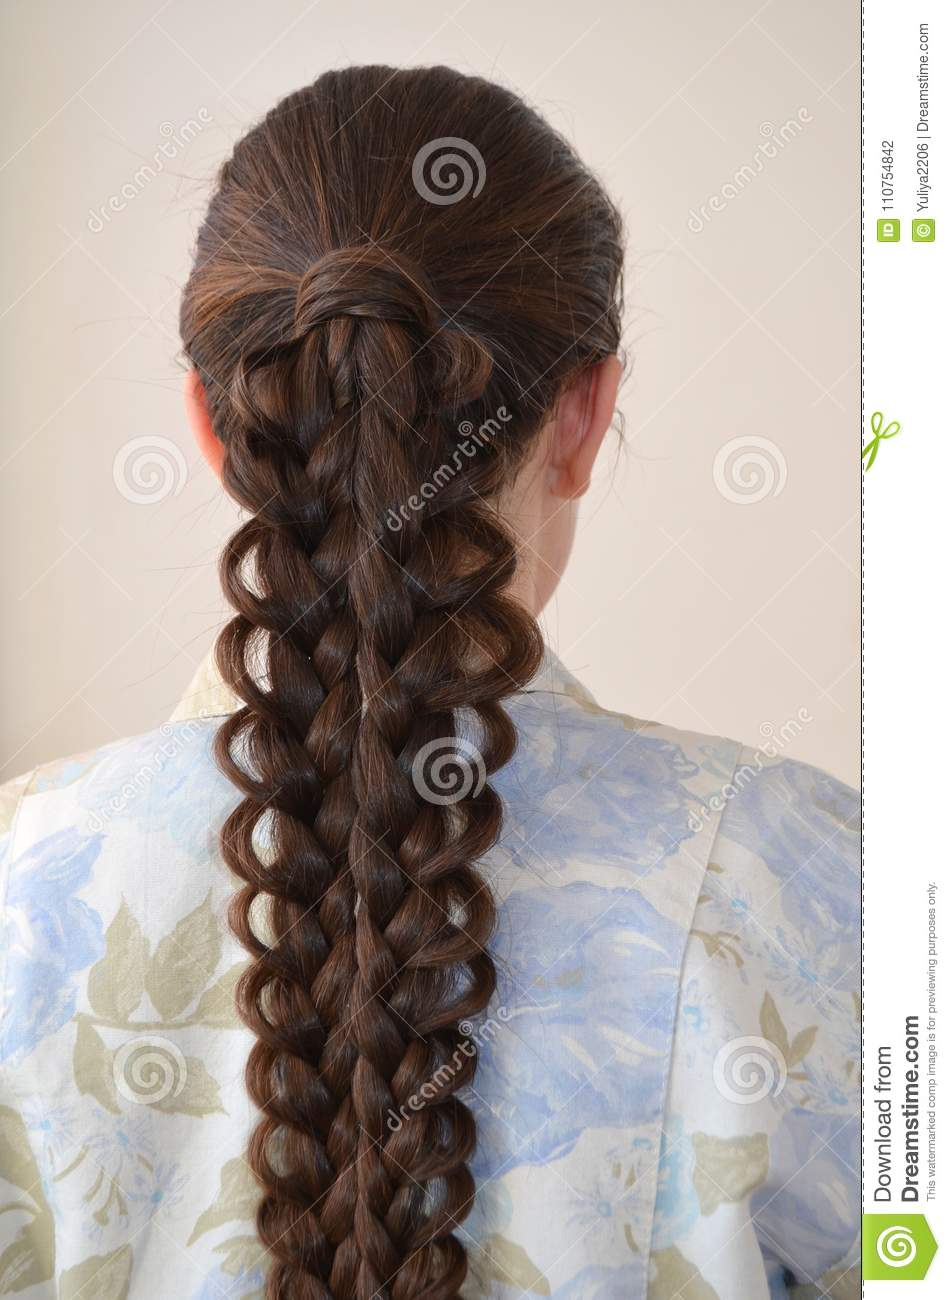 Openwork French Braid Hairstyle With Long Length Of Hair Stock